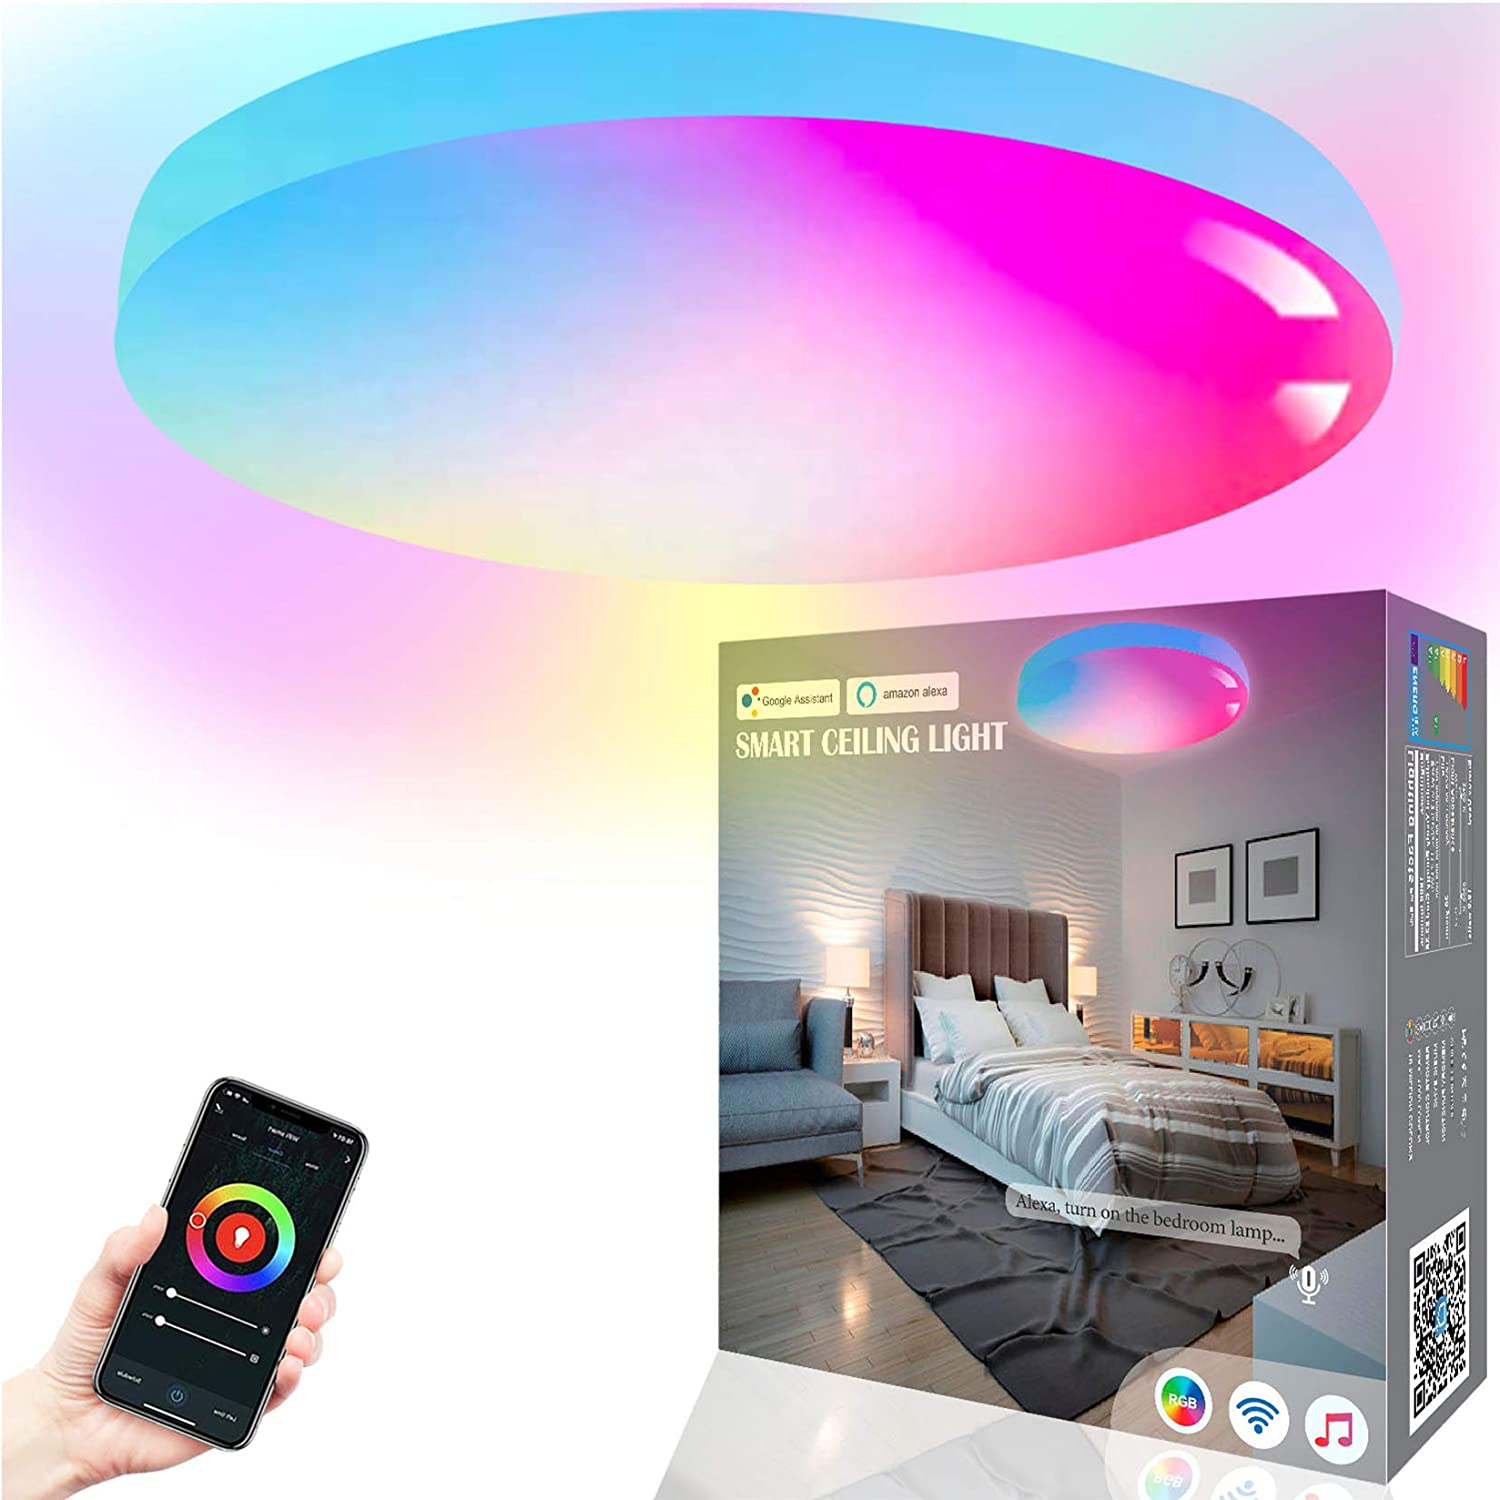 MikeWin Smart Ceiling Light Flush Mount LED WiFi 18W 12 Inch, Compatible with Alexa Google Home, Dimmable 2700-6500K RGBCW Low Profile Ambient Light Fixture for Bedroom Living Room